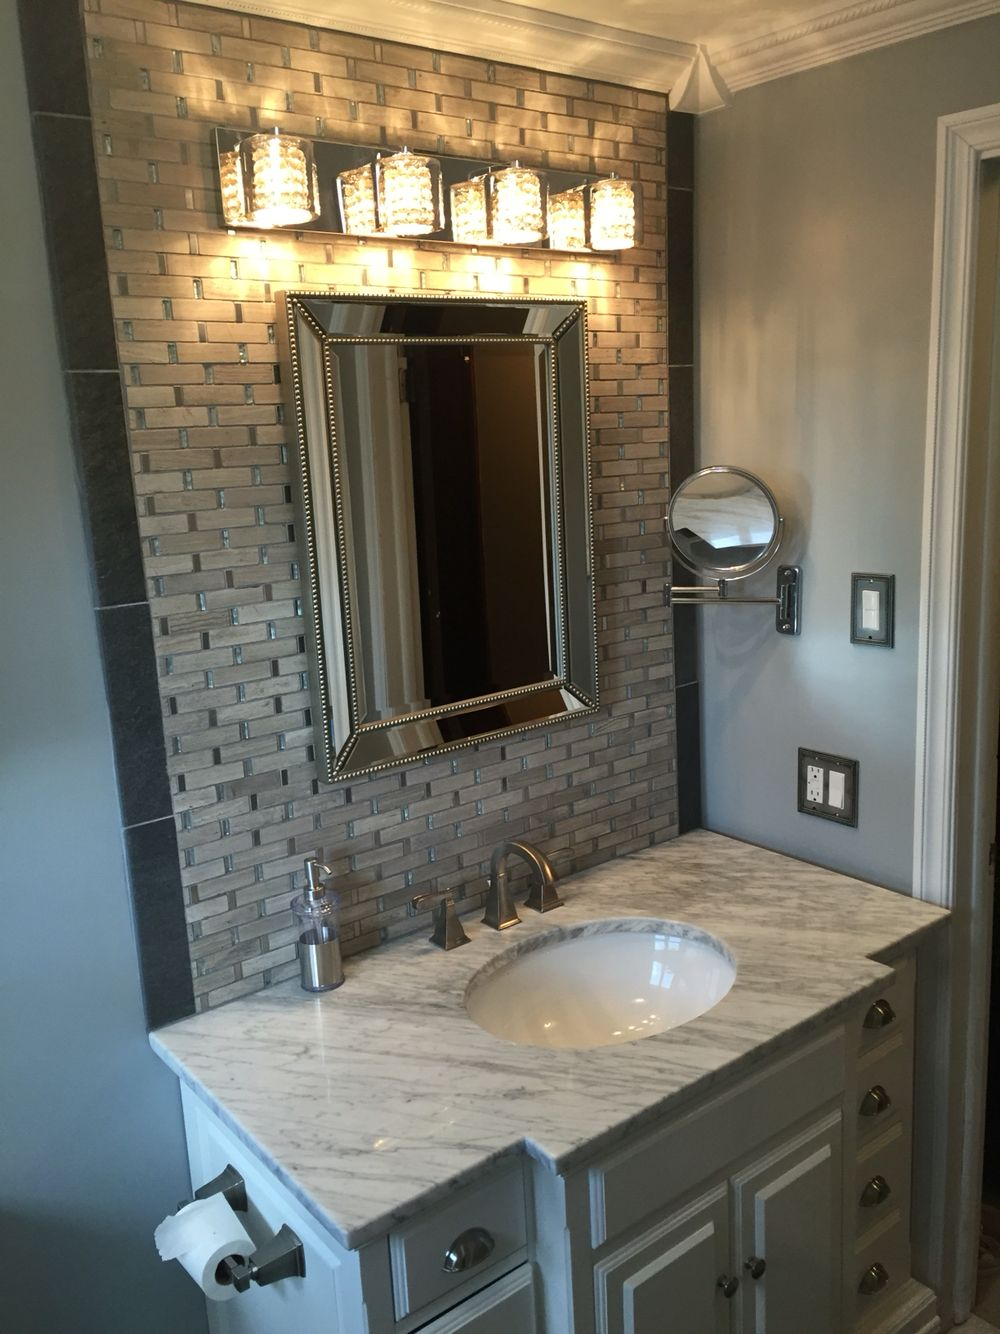 Galvano Charcoal And Ms International Stella Mosaic Above Sink Allen Roth Vanover White